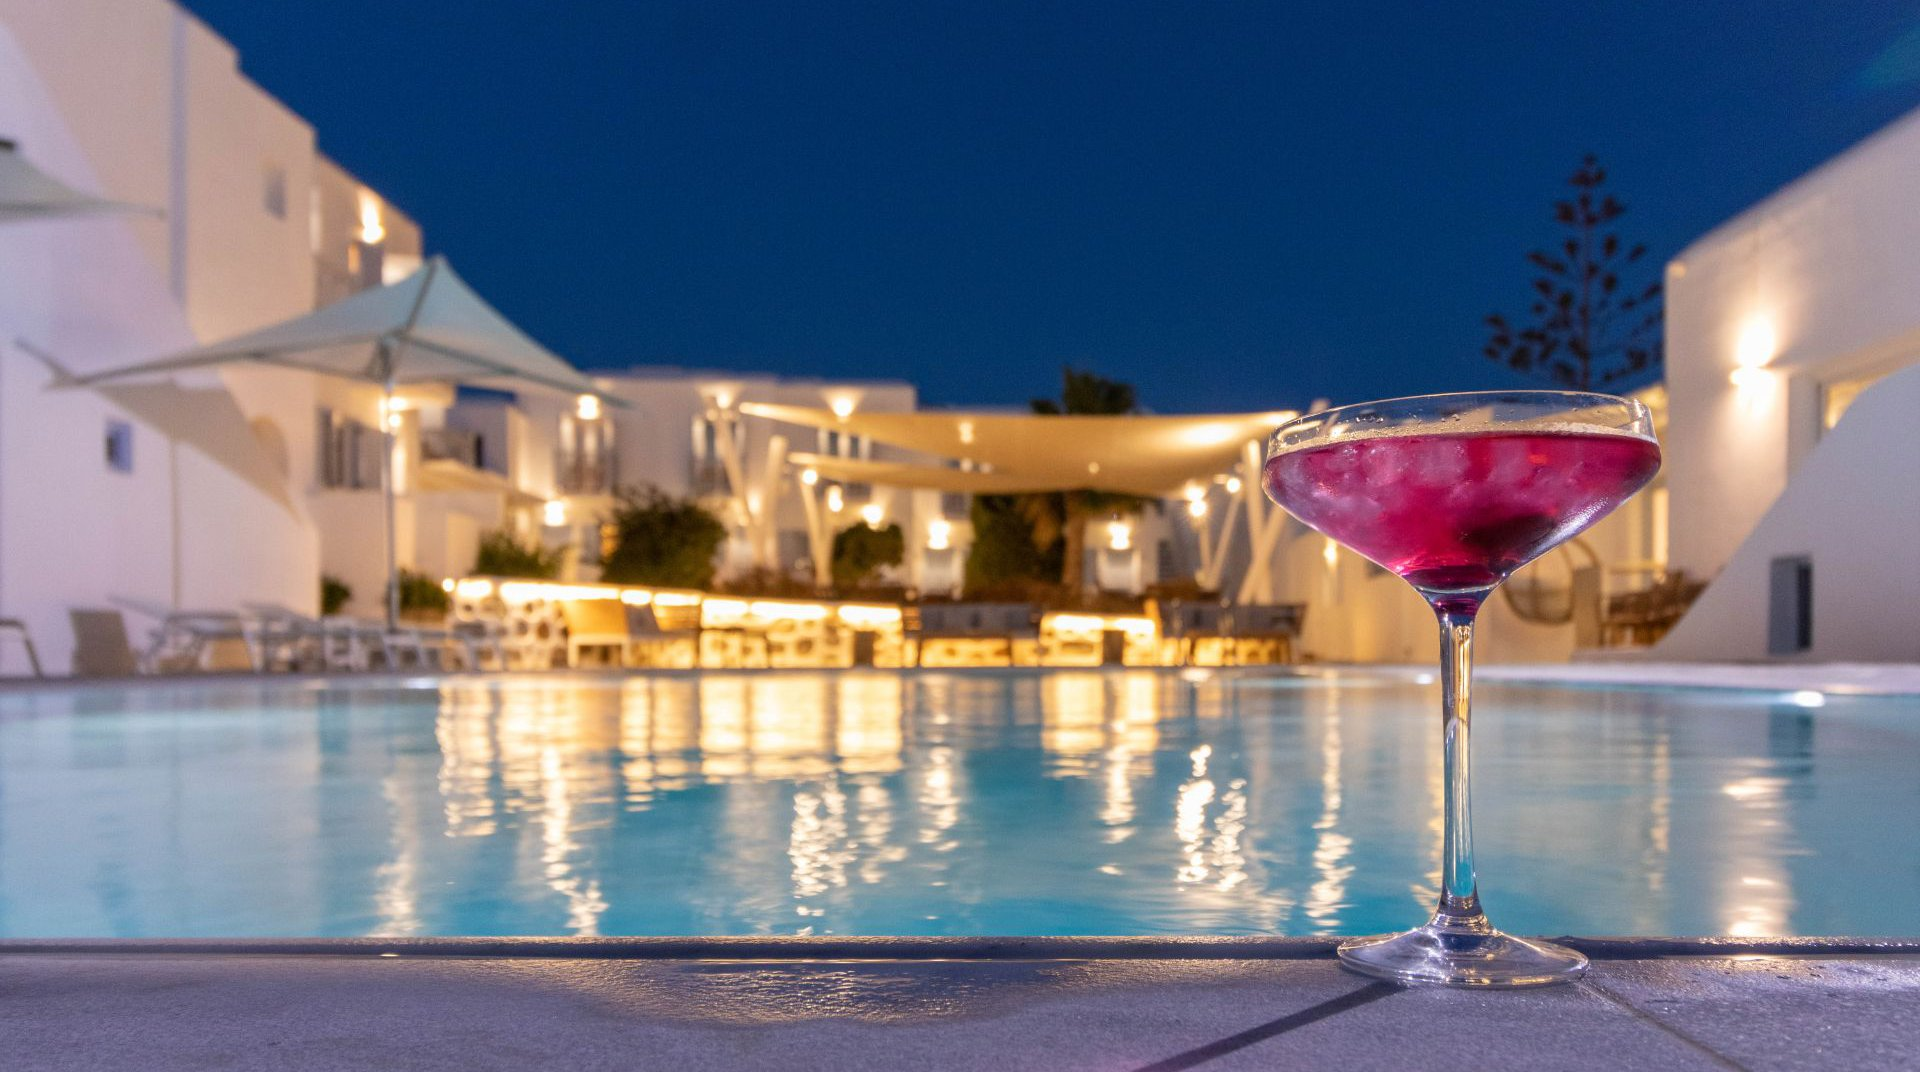 The pool of the Main Section during night time with a cocktail and the restaurant in the background